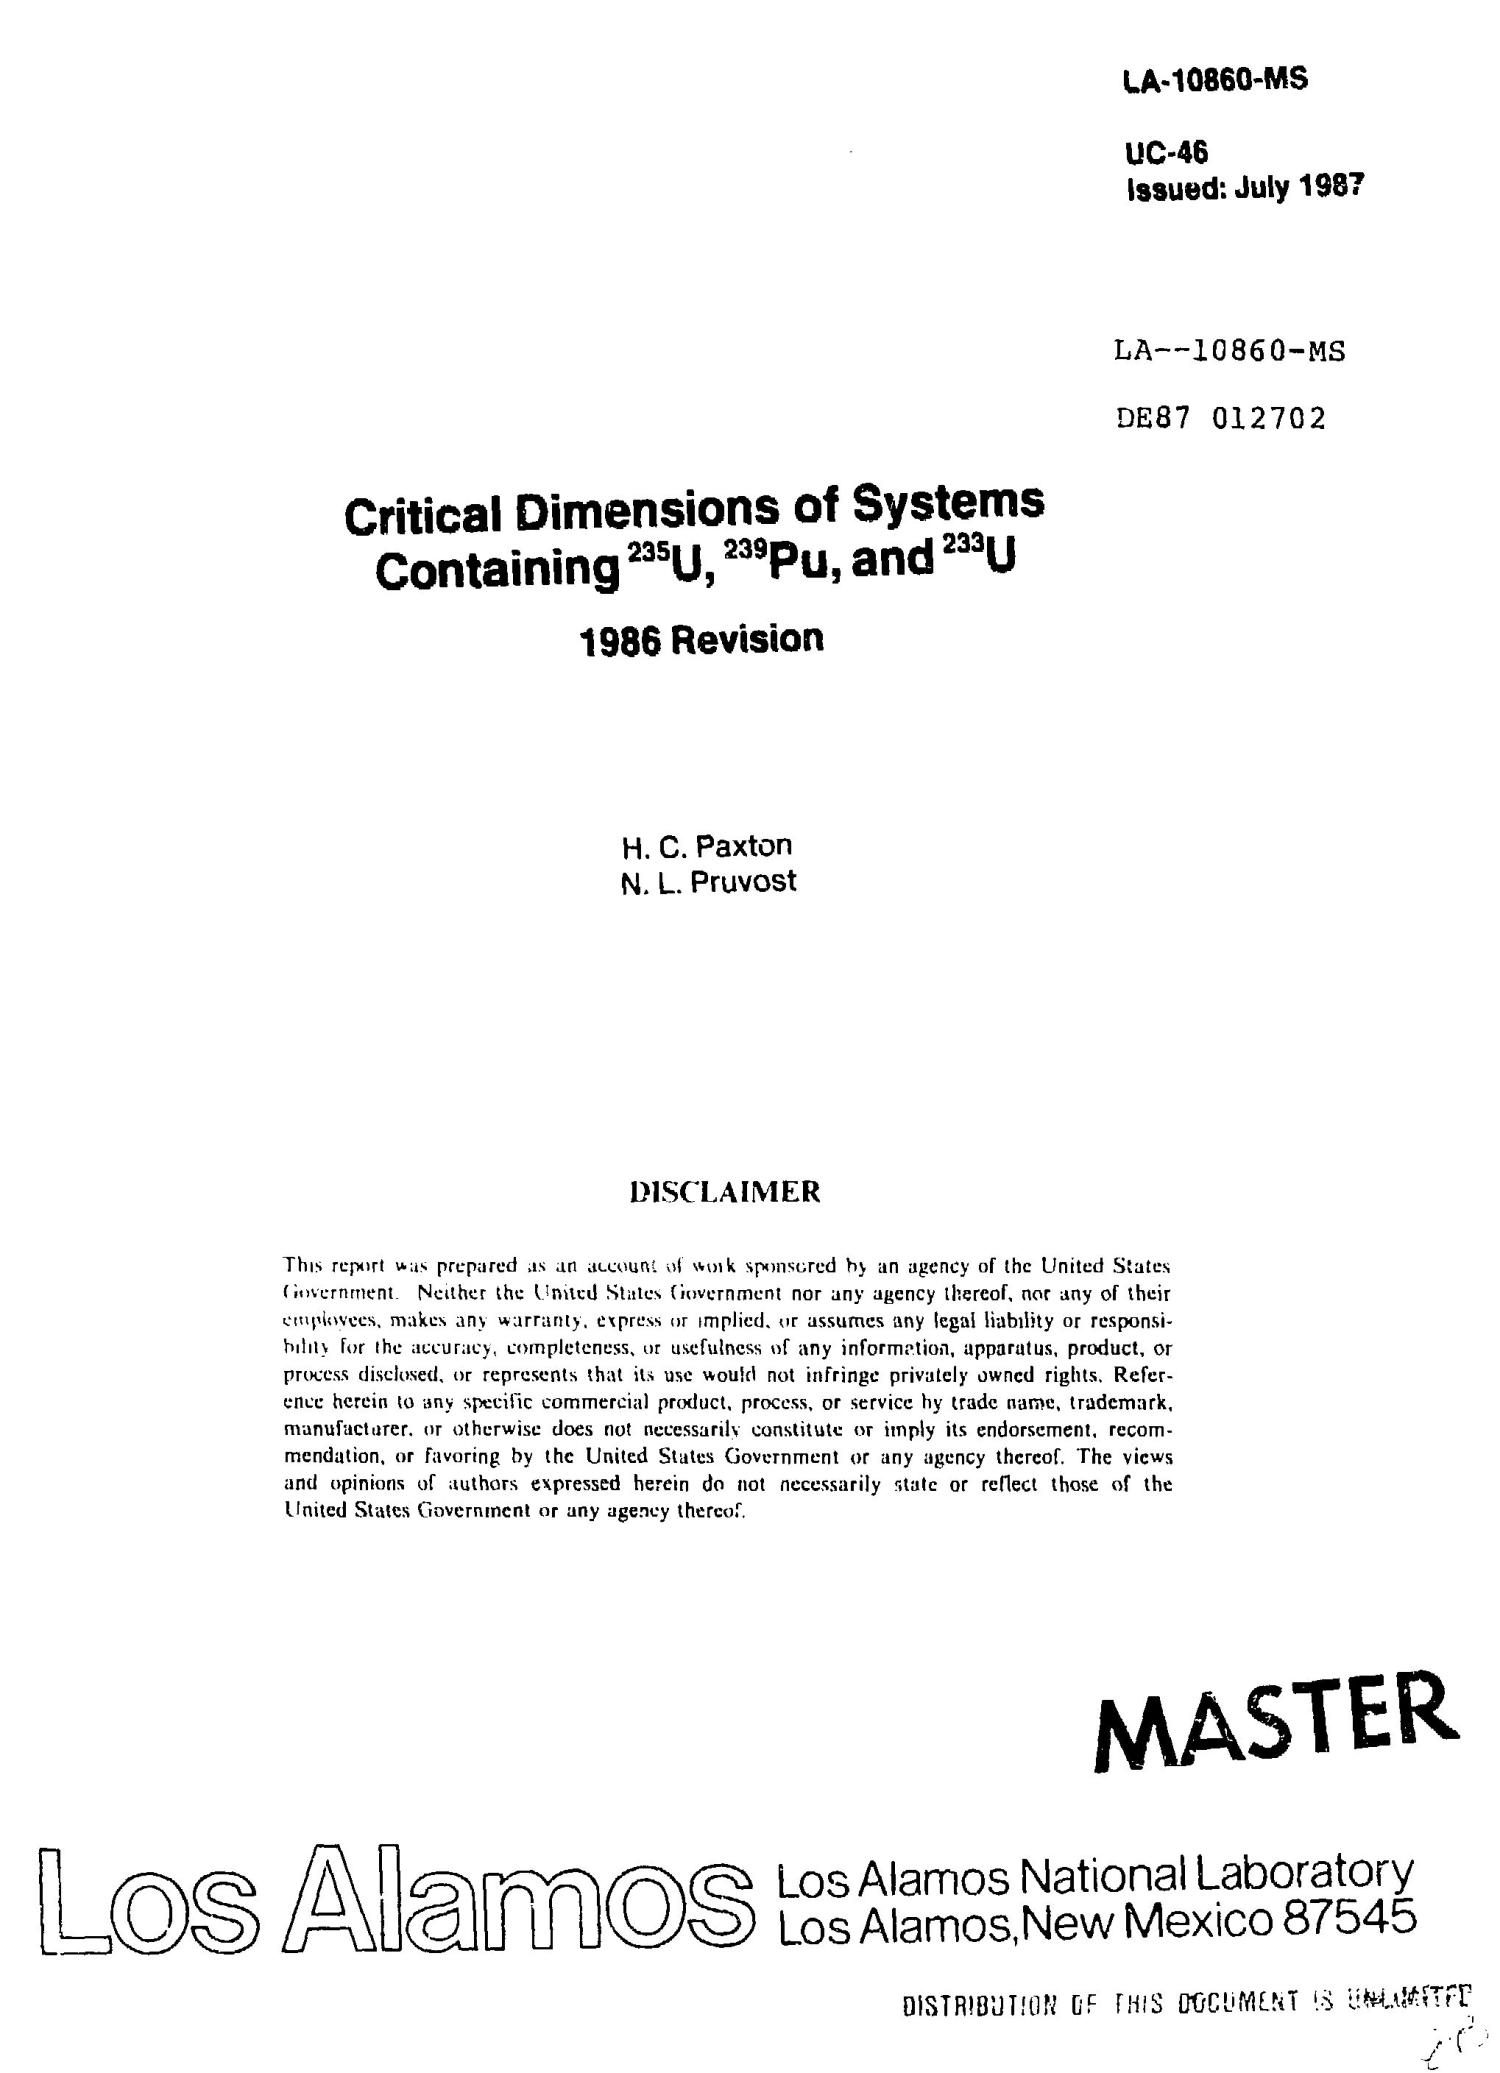 Critical dimensions of systems containing /sup 235/U, /sup 239/Pu, and /sup 233/U: 1986 Revision                                                                                                      [Sequence #]: 1 of 205